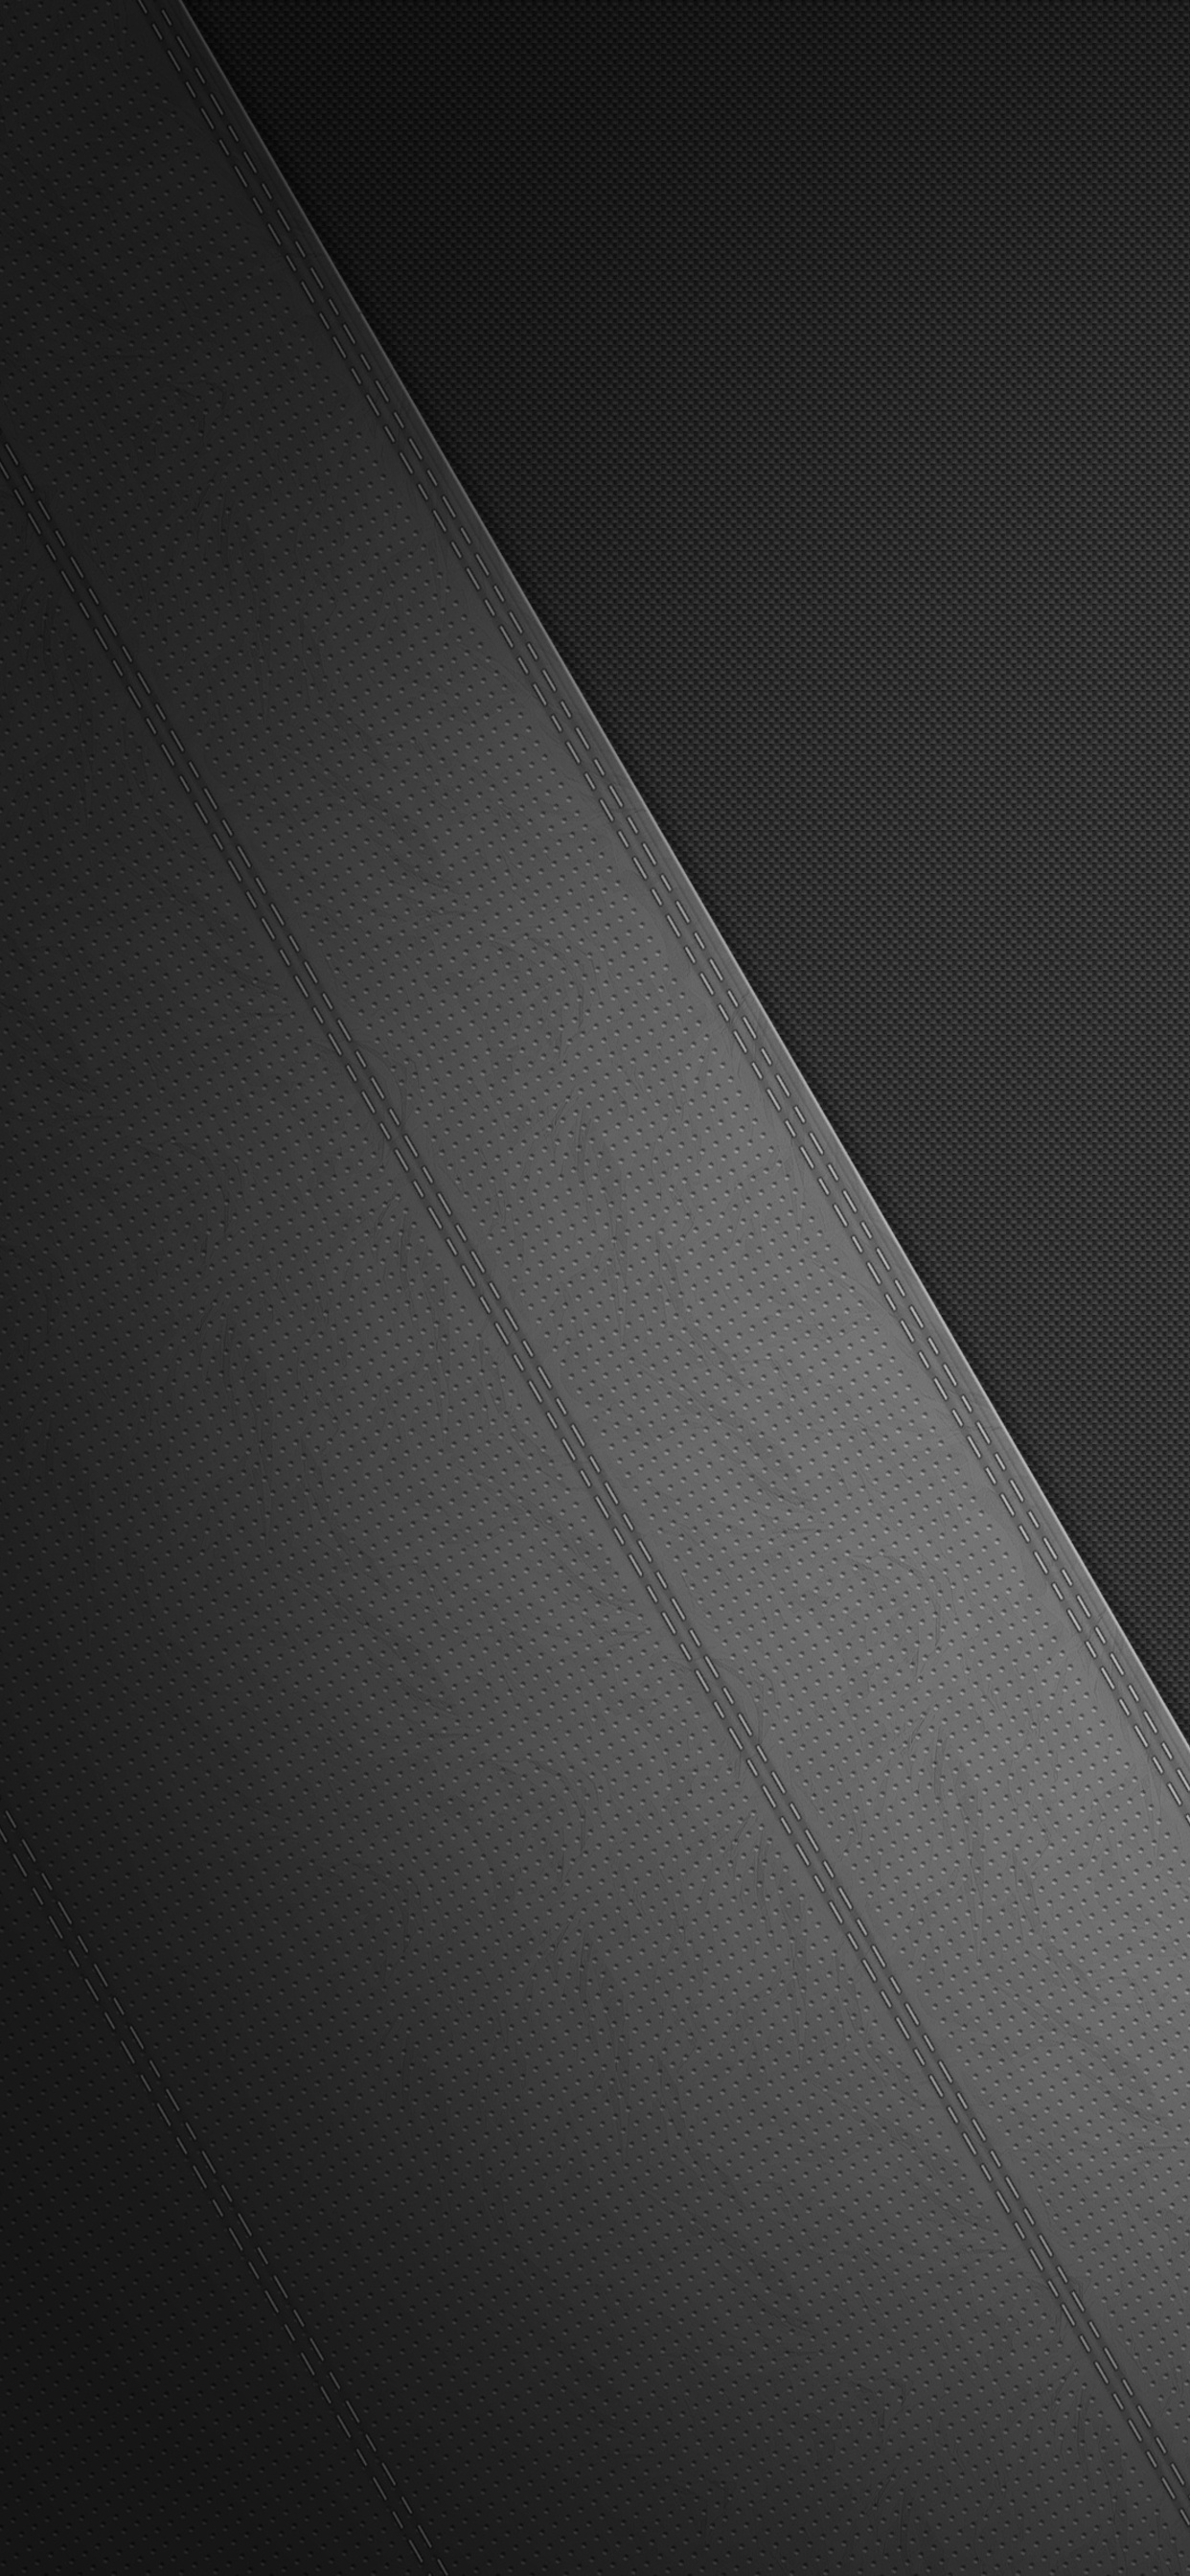 1242x2688 Leather Texture Black 4k Iphone Xs Max Hd 4k Wallpapers Images Backgrounds Photos And Pictures